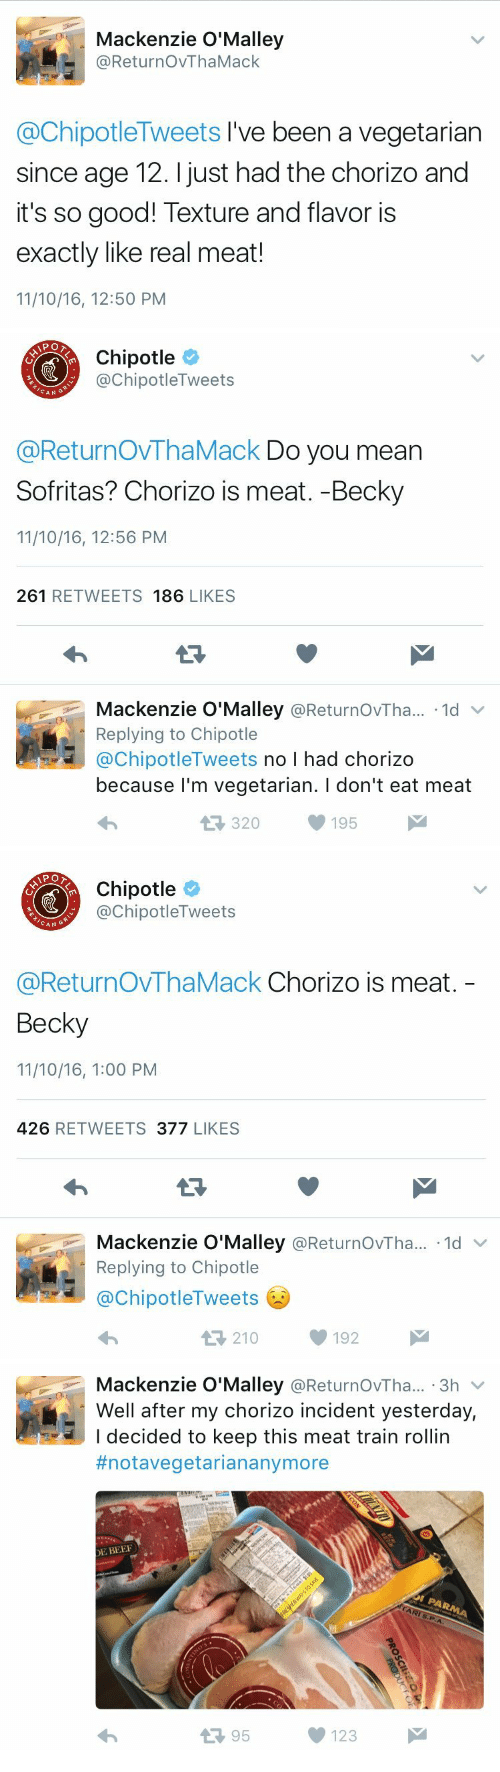 Broomstick, Chipotle, and Good: Mackenzie O'Malley  @ReturnOvThaMack  @ChipotleTweets I've been a vegetarian  since age 12. I just had the chorizo and  it's so good! Texture and flavor is  exactly like real meat!  11/10/16, 12:50 PM   Chipotle  @ChipotleTweets  CAN  @ReturnOVThaMack Do you mean  Sofritas? Chorizo is meat. -Becky  11/10/16, 12:56 PM  261 RETWEETS 186 LIKES  Mackenzie O'Malley @ReturnOvTha.. 1d  Replying to Chipotle  @ChipotleTweets no I had chorizo  because l'm vegetarian. I don't eat meat  320195   Chipotle  @ChipotleTweets  CAN G  @ReturnOvThaMack Chorizo is meat.  Becky  11/10/16, 1:00 PM  426 RETWEETS 377 LIKES  Mackenzie O'Malley @ReturnOvTha...-1d ﹀  Replying to Chipotle  @ChipotleTweets  わ  210192   Mackenzie O'Malley @ReturnOvTha... 3h v  Well after my chorizo incident yesterday,  I decided to keep this meat train rollin  #notavegetariananymore  E BEE  13 95  123